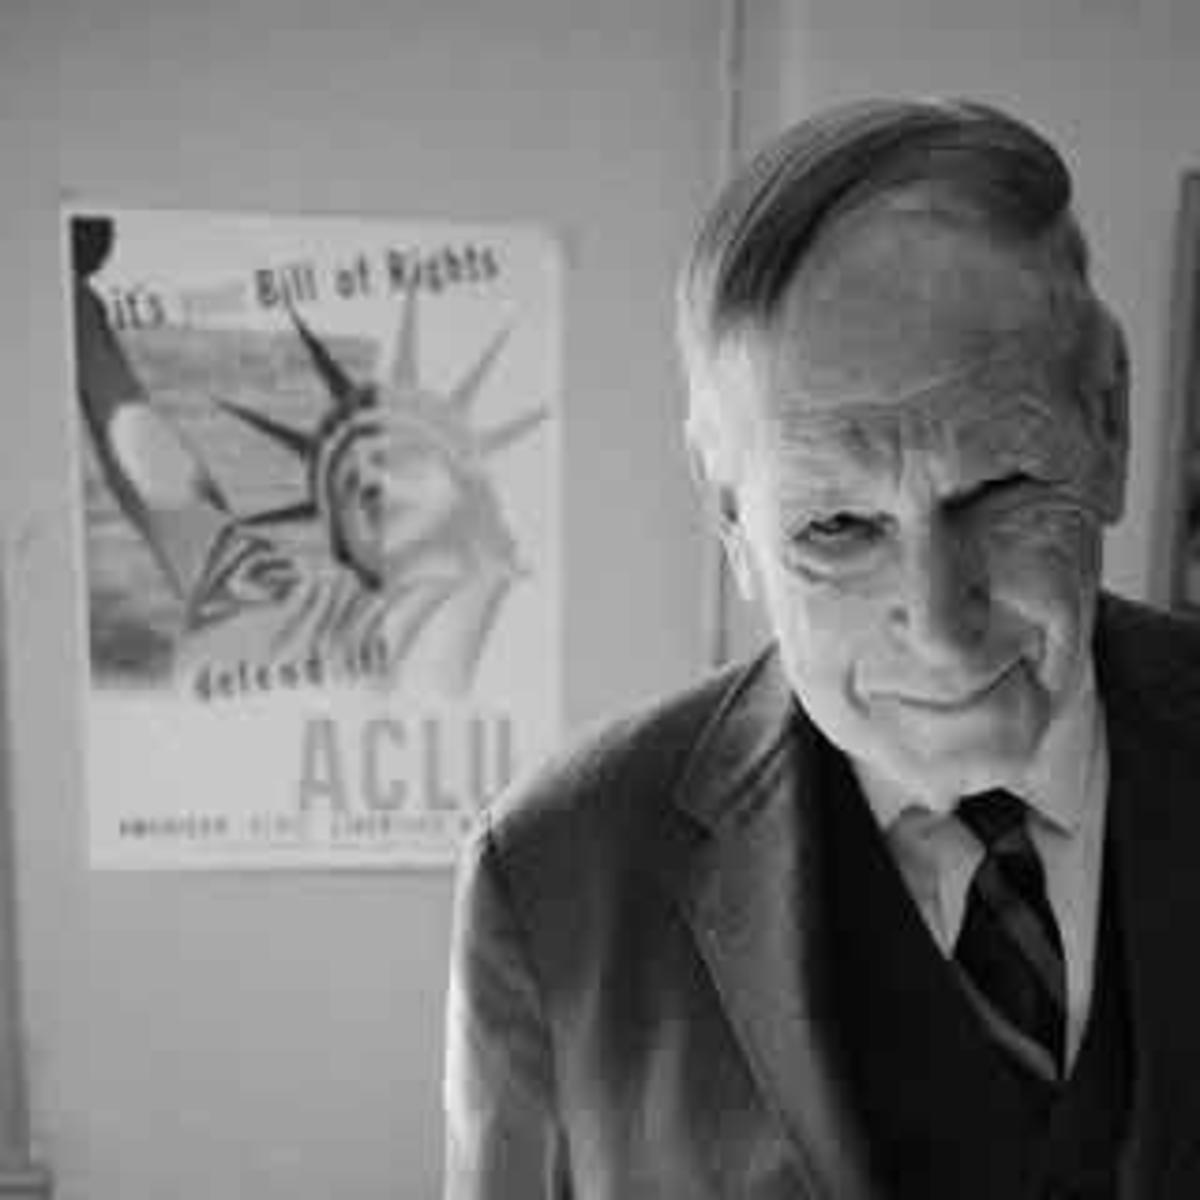 ROGER BALDWIN THE FOUNDER OF THE ACLU; AN AVOWED COMMUNIST